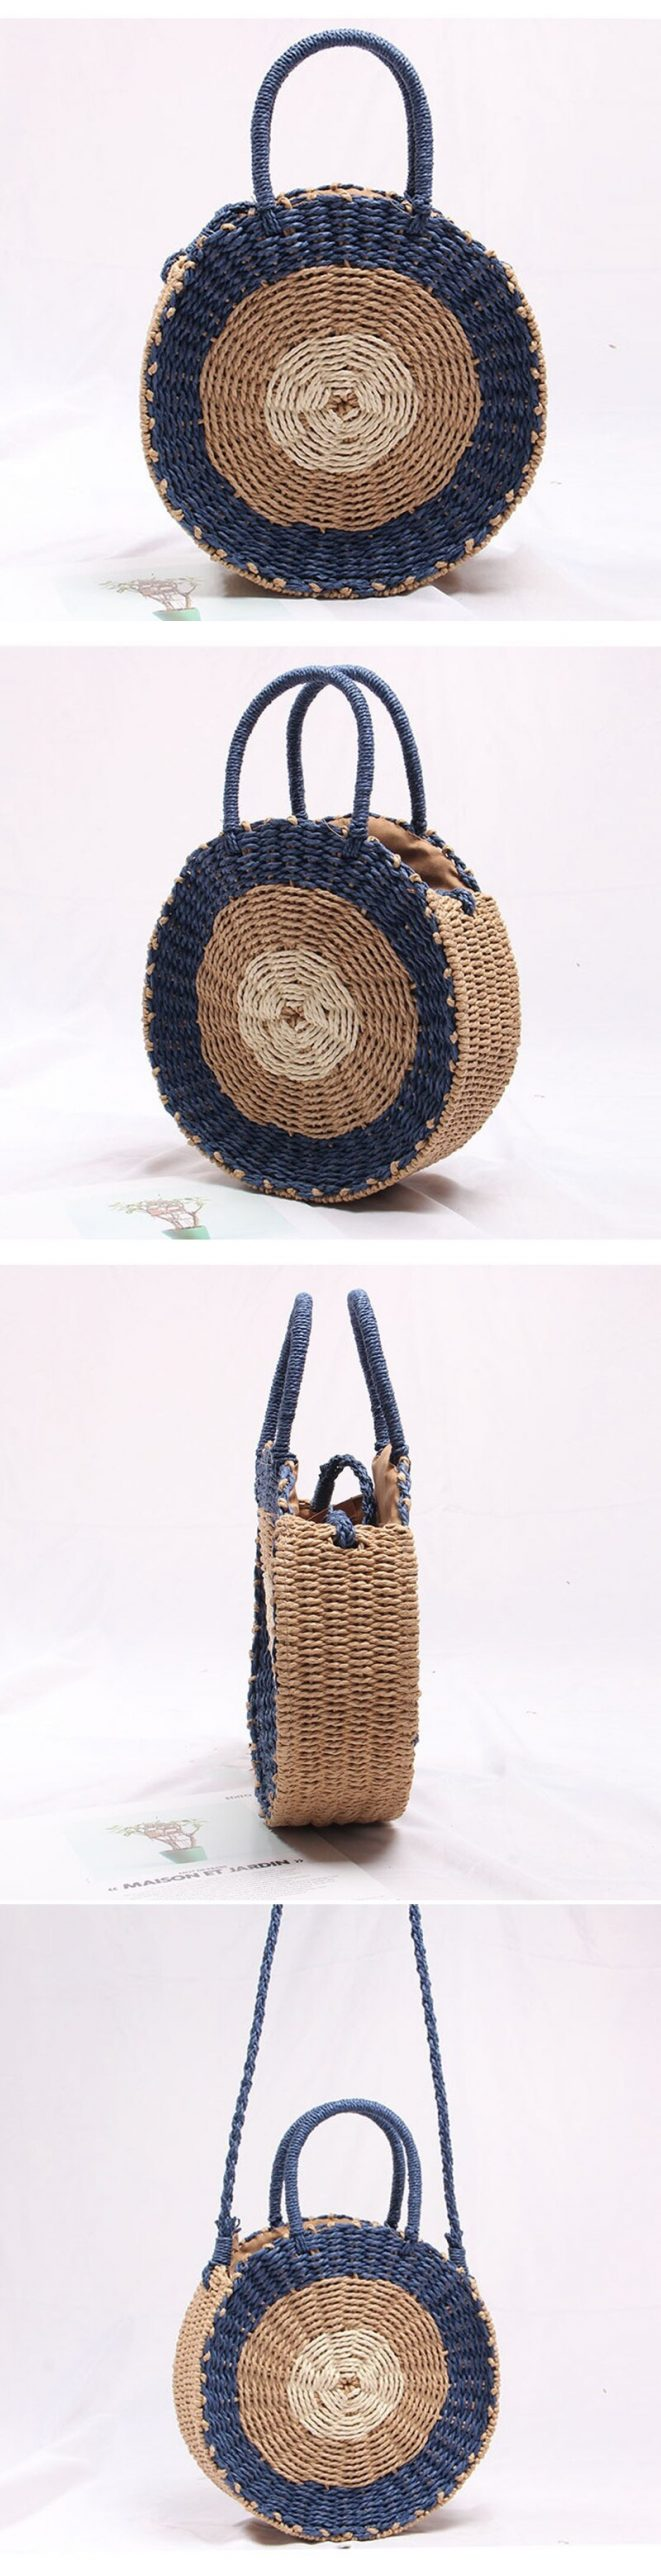 Fresh Rattan Woven Straw Rope Knitted Beach Bag 8.1 scaled